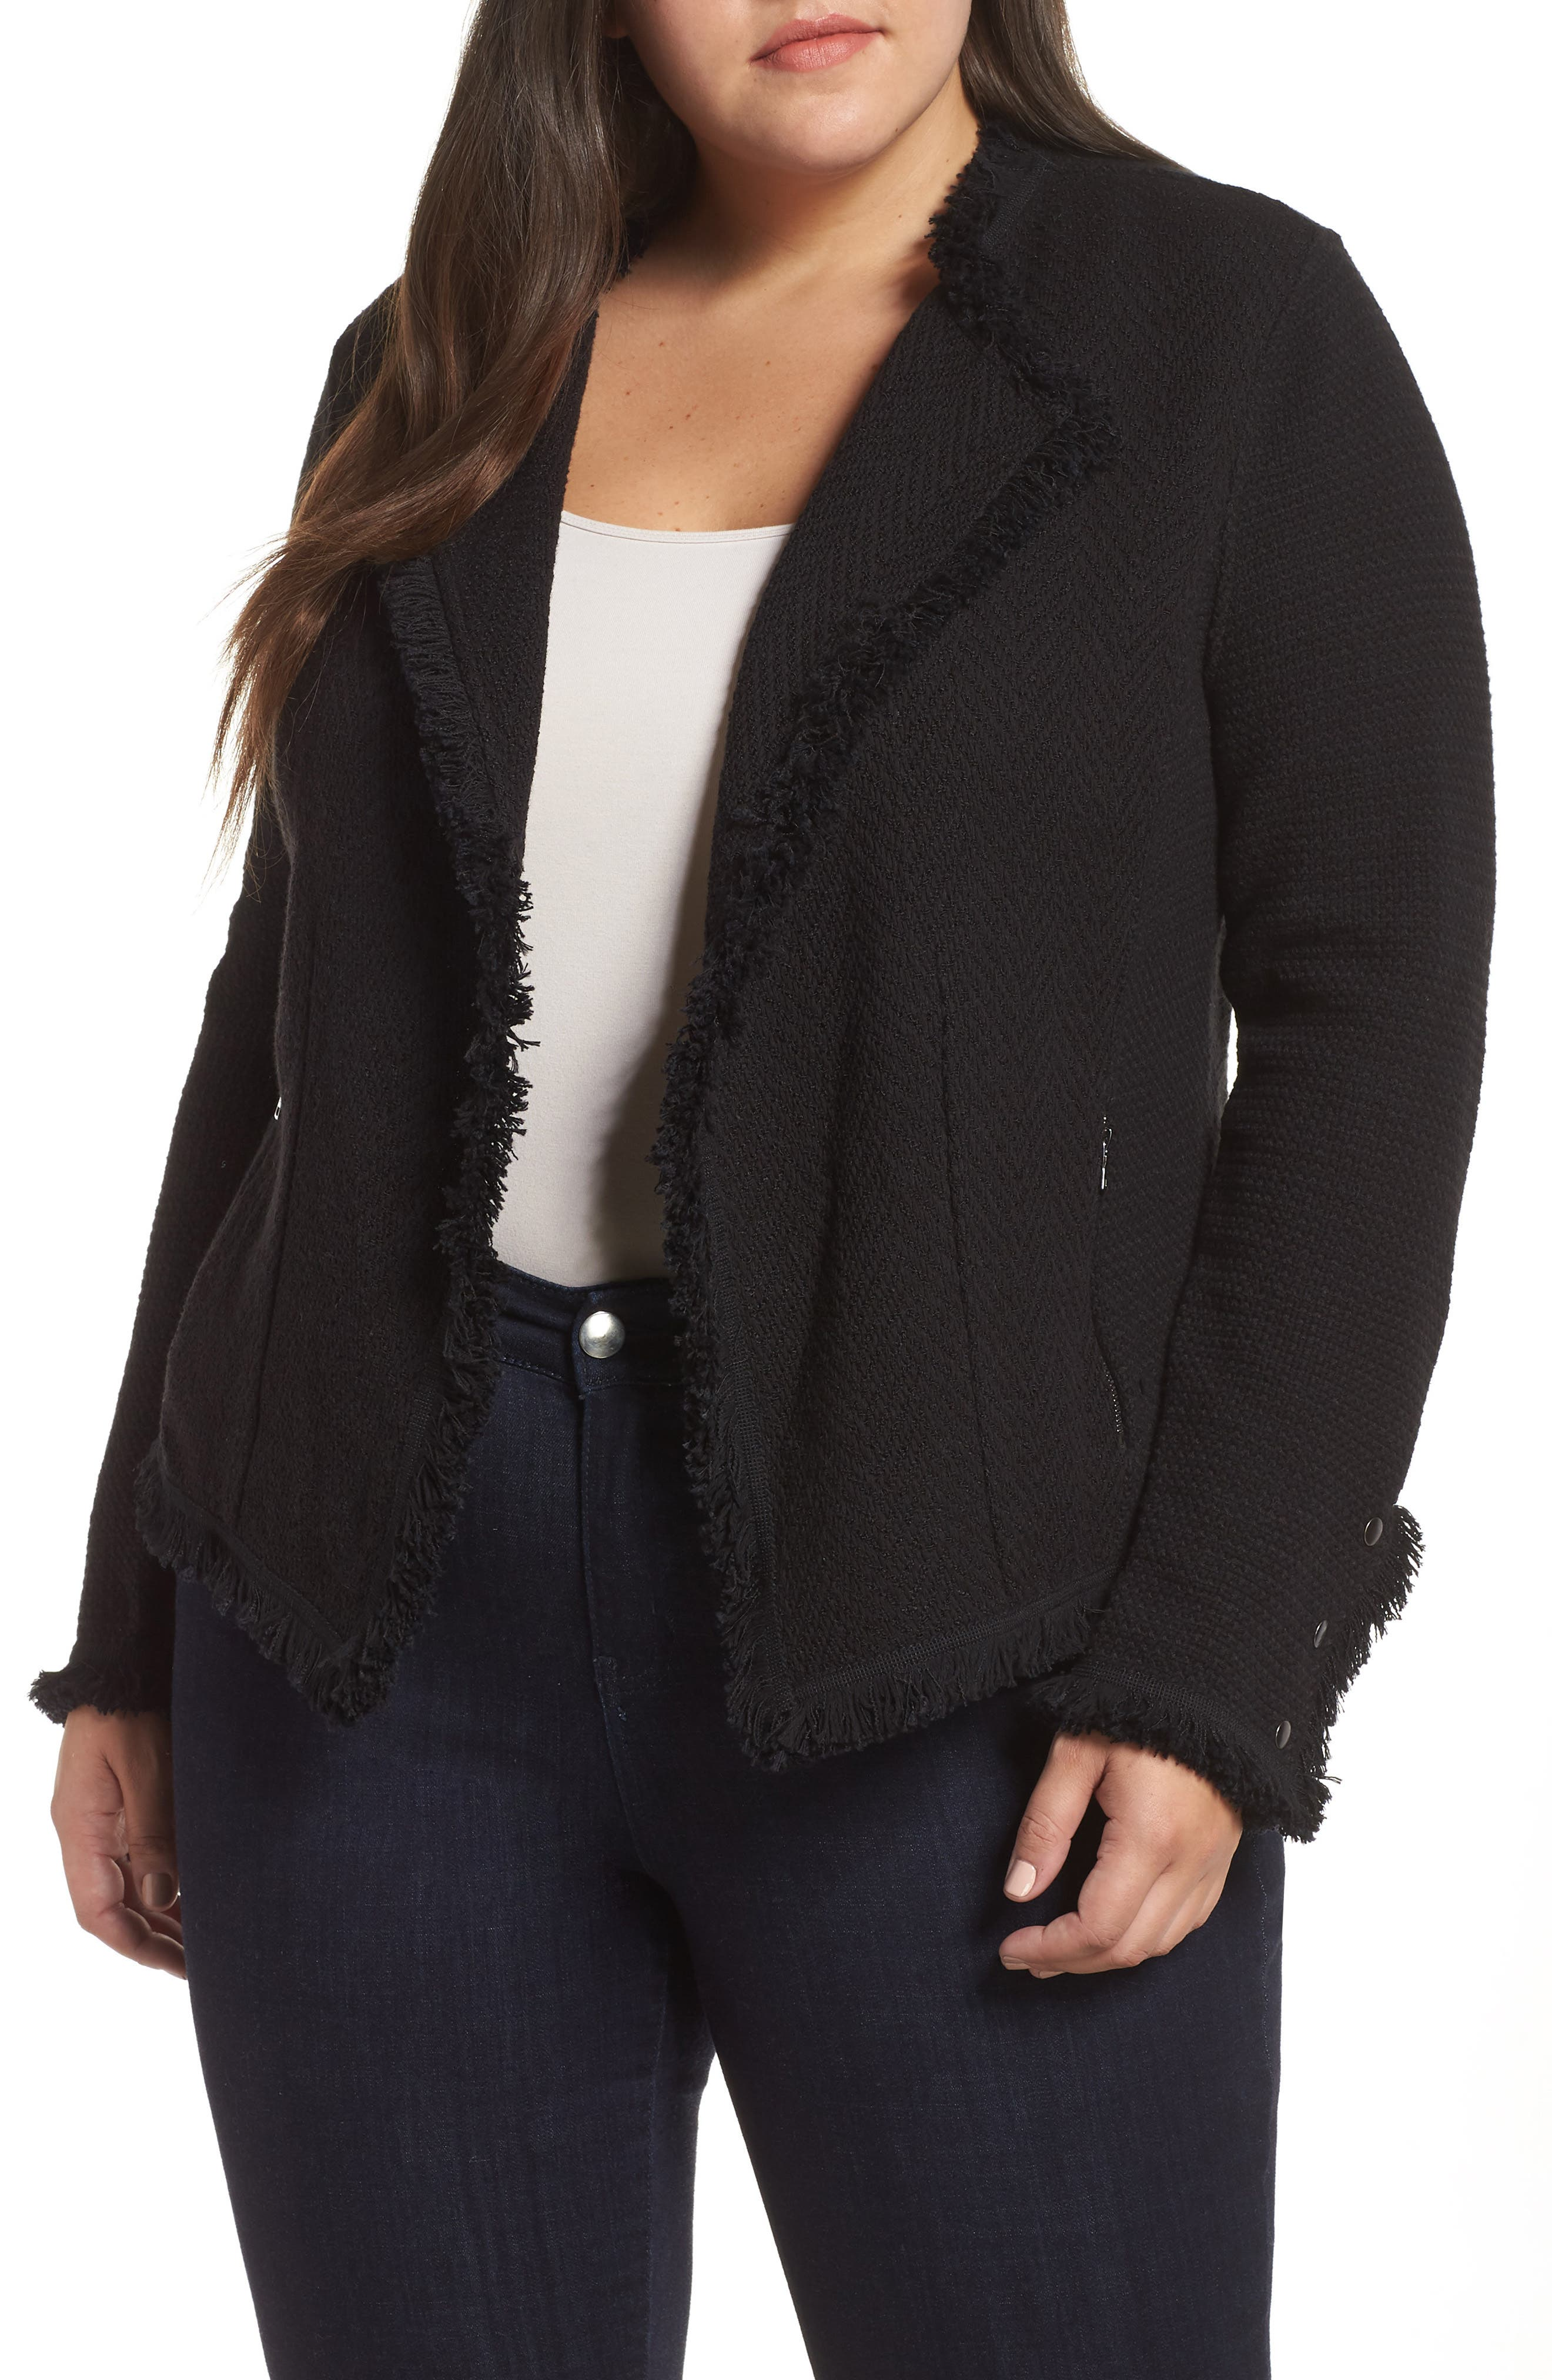 Extended cuffs give a dash of military polish to a fitted cotton-blend jacket with a rich mix of tweedy textures outlined with plush fringe. Style Name: Nic+Zoe Fringe Mix Jacket (Plus Size). Style Number: 5698454. Available in stores.